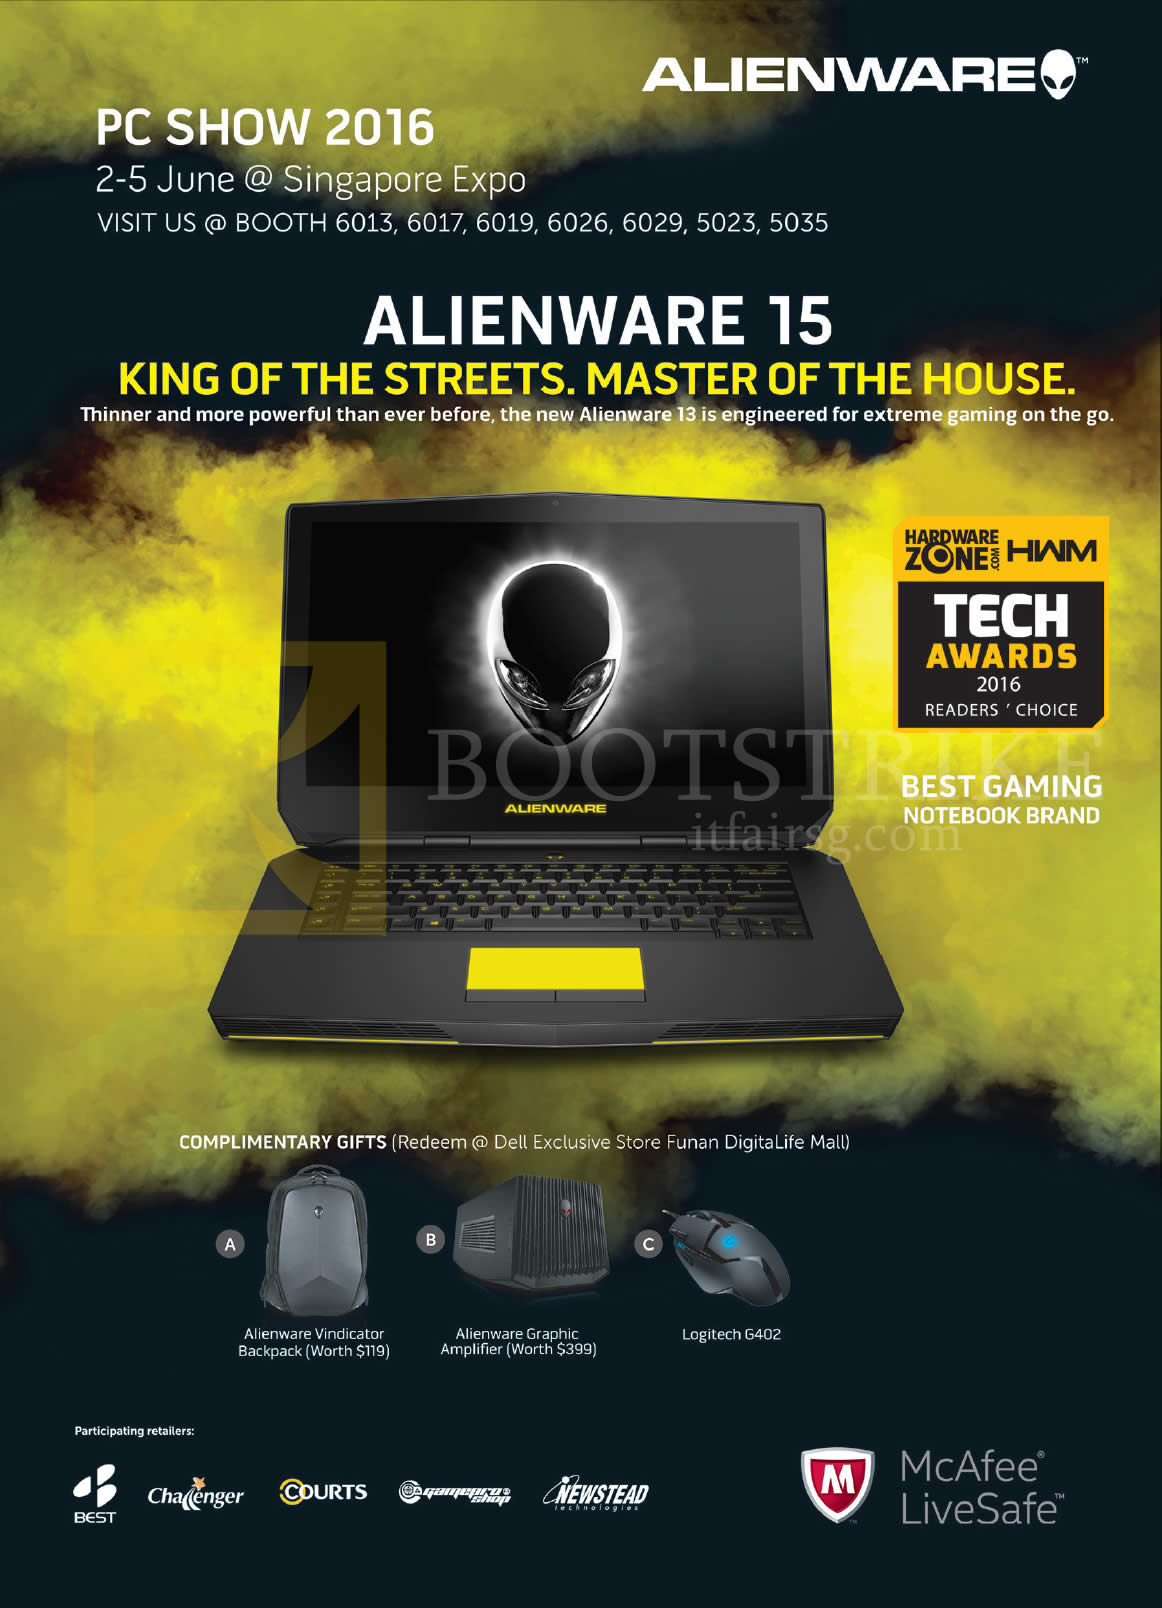 PC SHOW 2016 price list image brochure of Dell Alienware Notebook 15